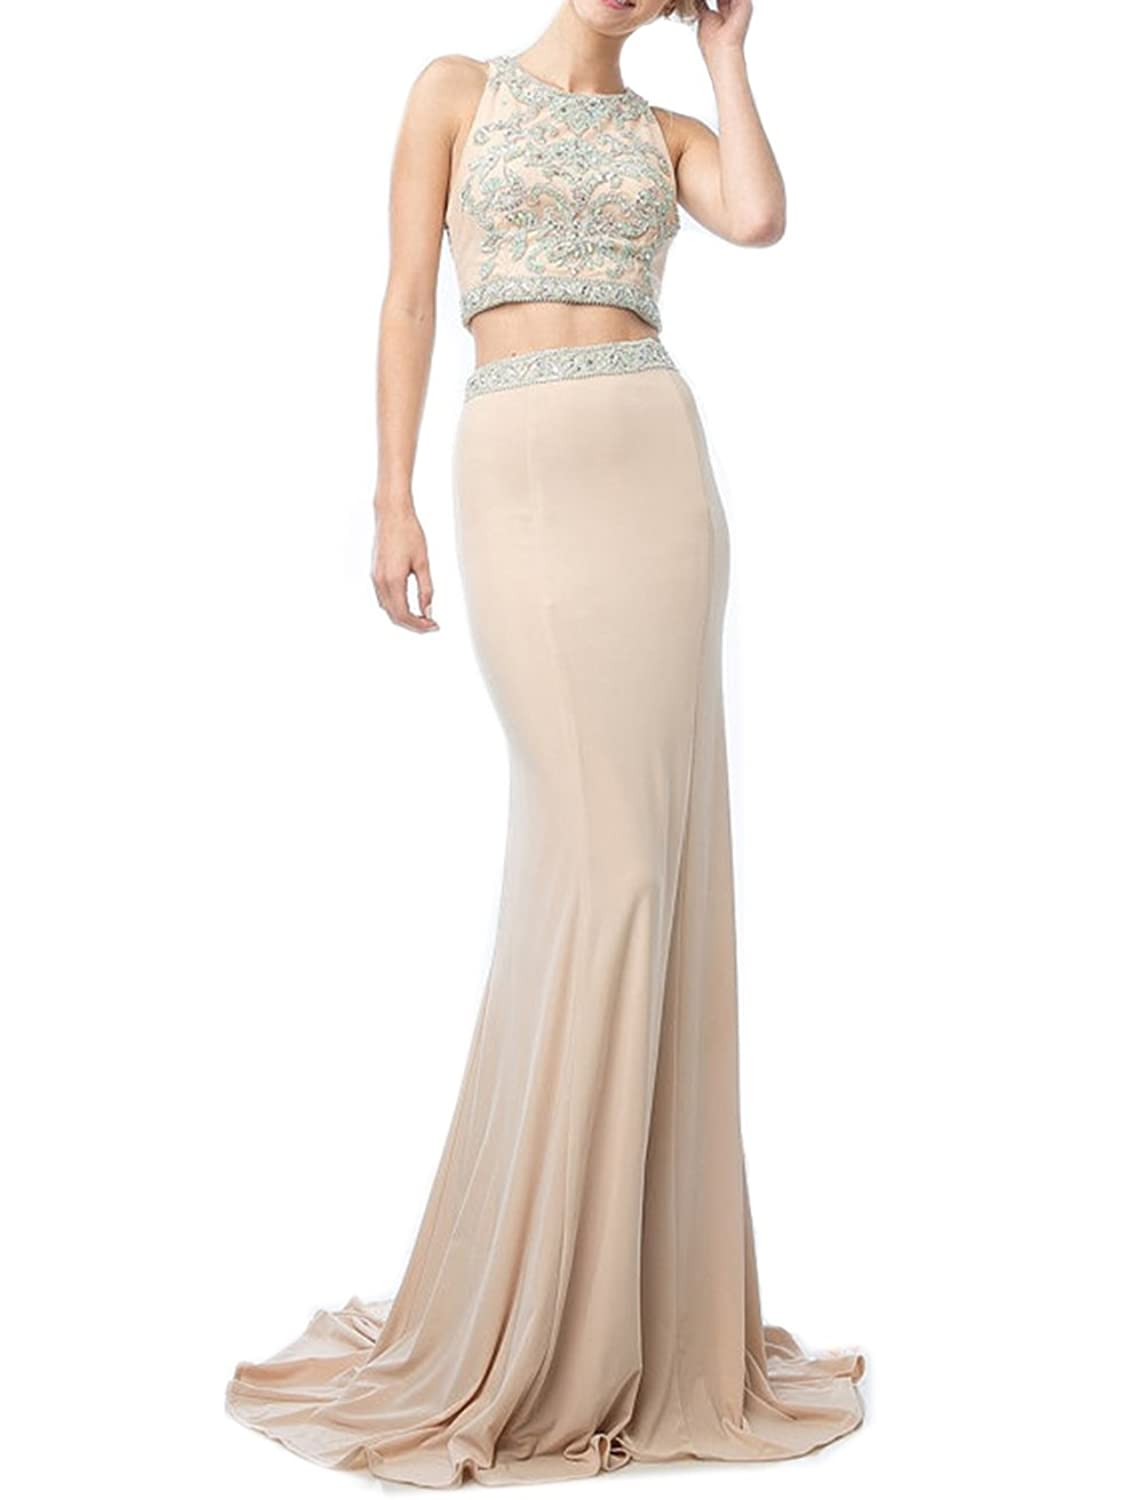 Engerla Women's Satin Jewel Beading Crystal Applique Backless Two-piece Mermaid Evening Dress